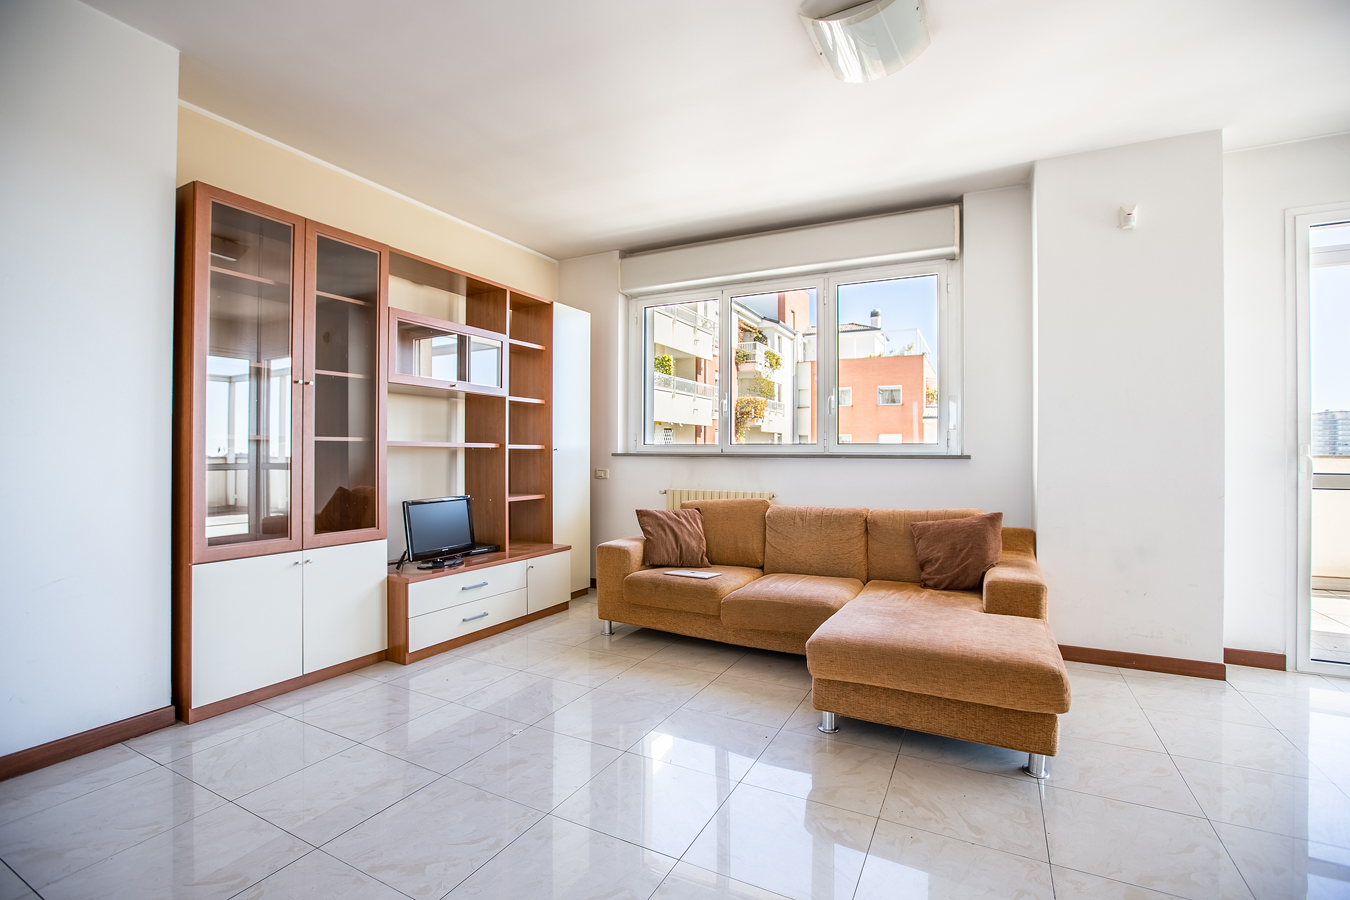 Student Apartment for rent in Via Carlo Perini, 18, 5° floor, in Milano, Italy